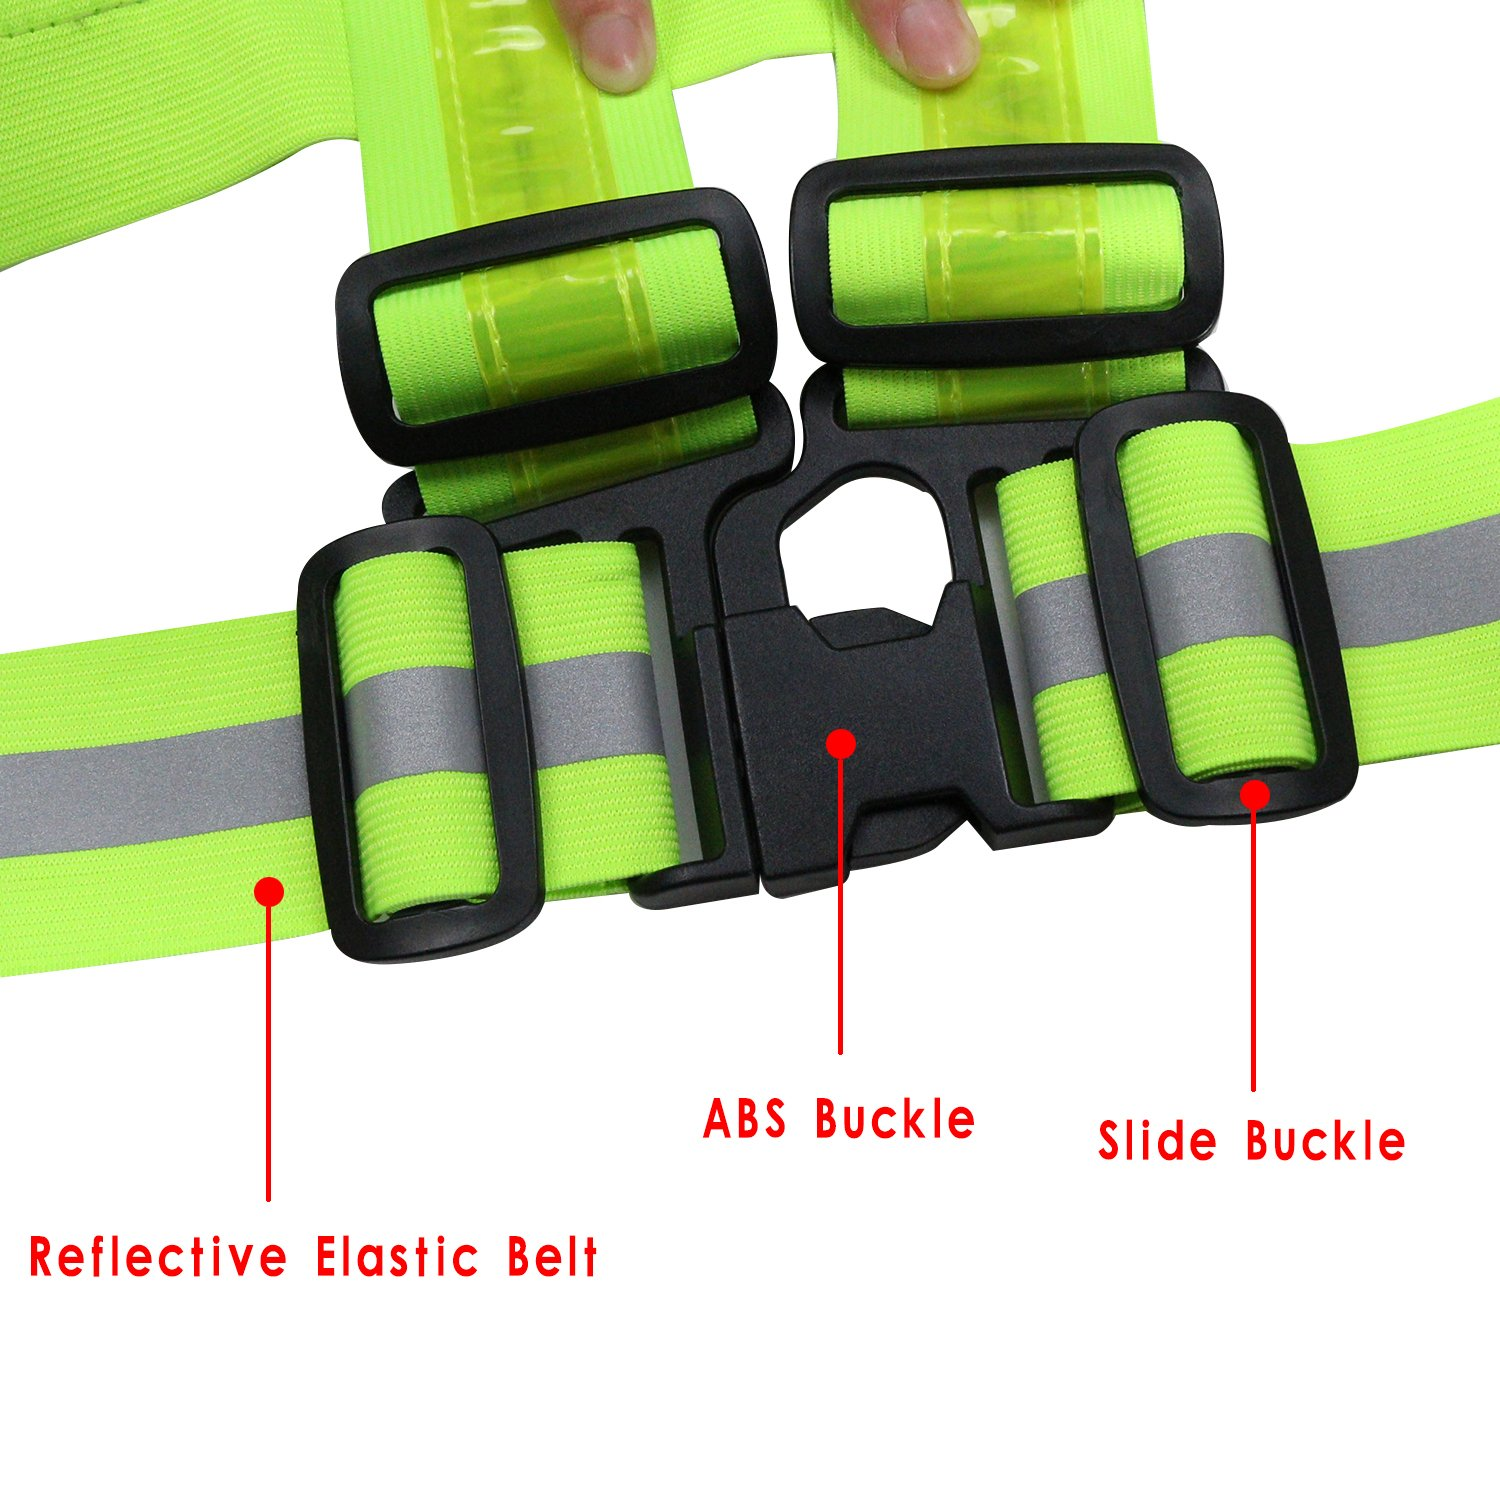 Jogging MORLIGHT LED Reflective Vest Adjustable Rechargeable High Visibility Safety Vest Gear for Night Running Cycling Motorcycling Dog Walking